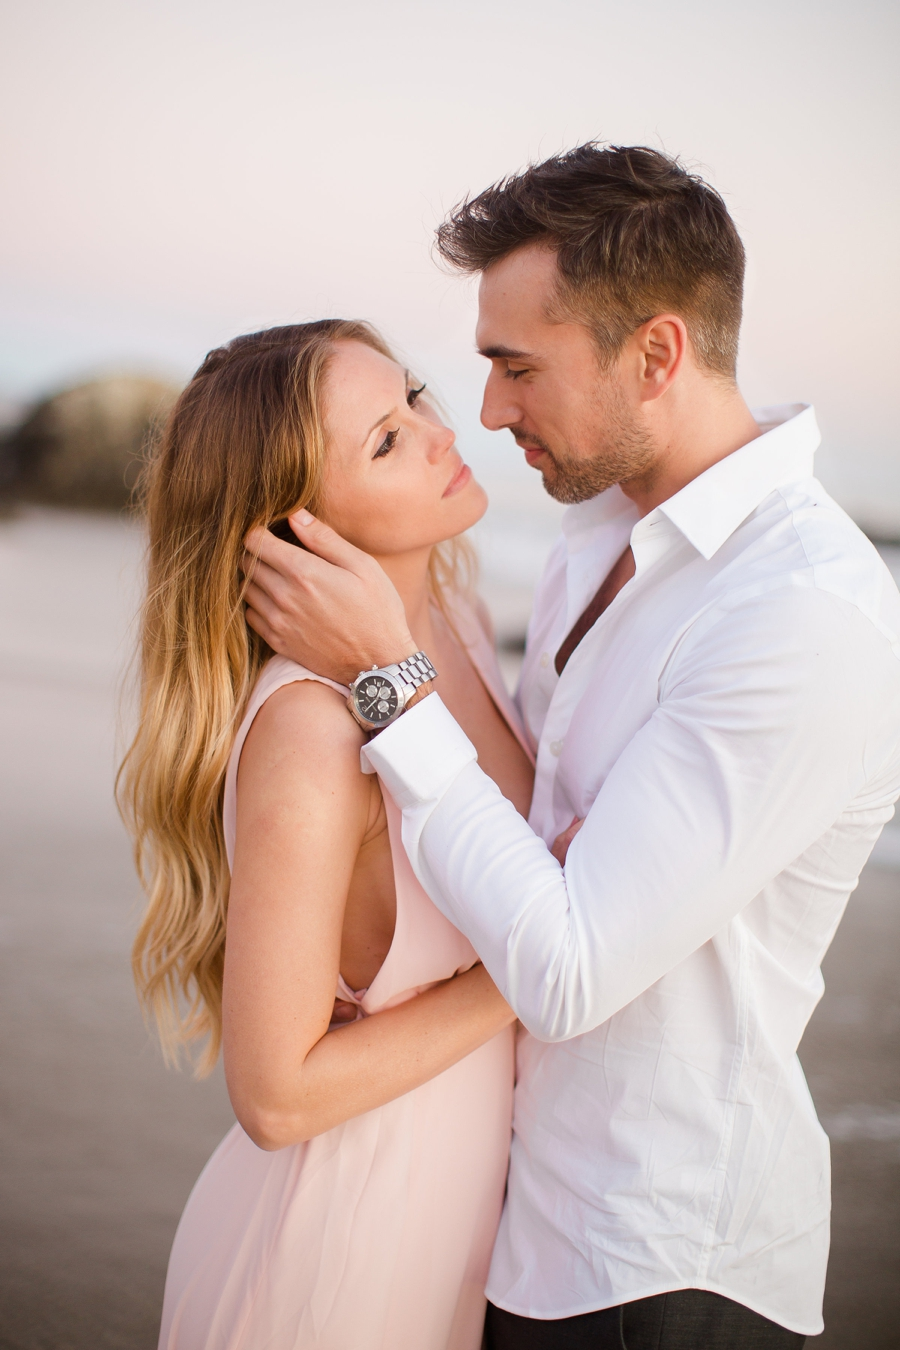 taylor_kinzie_photography_los_angeles_wedding_photographer_beach_engagement_session_0035